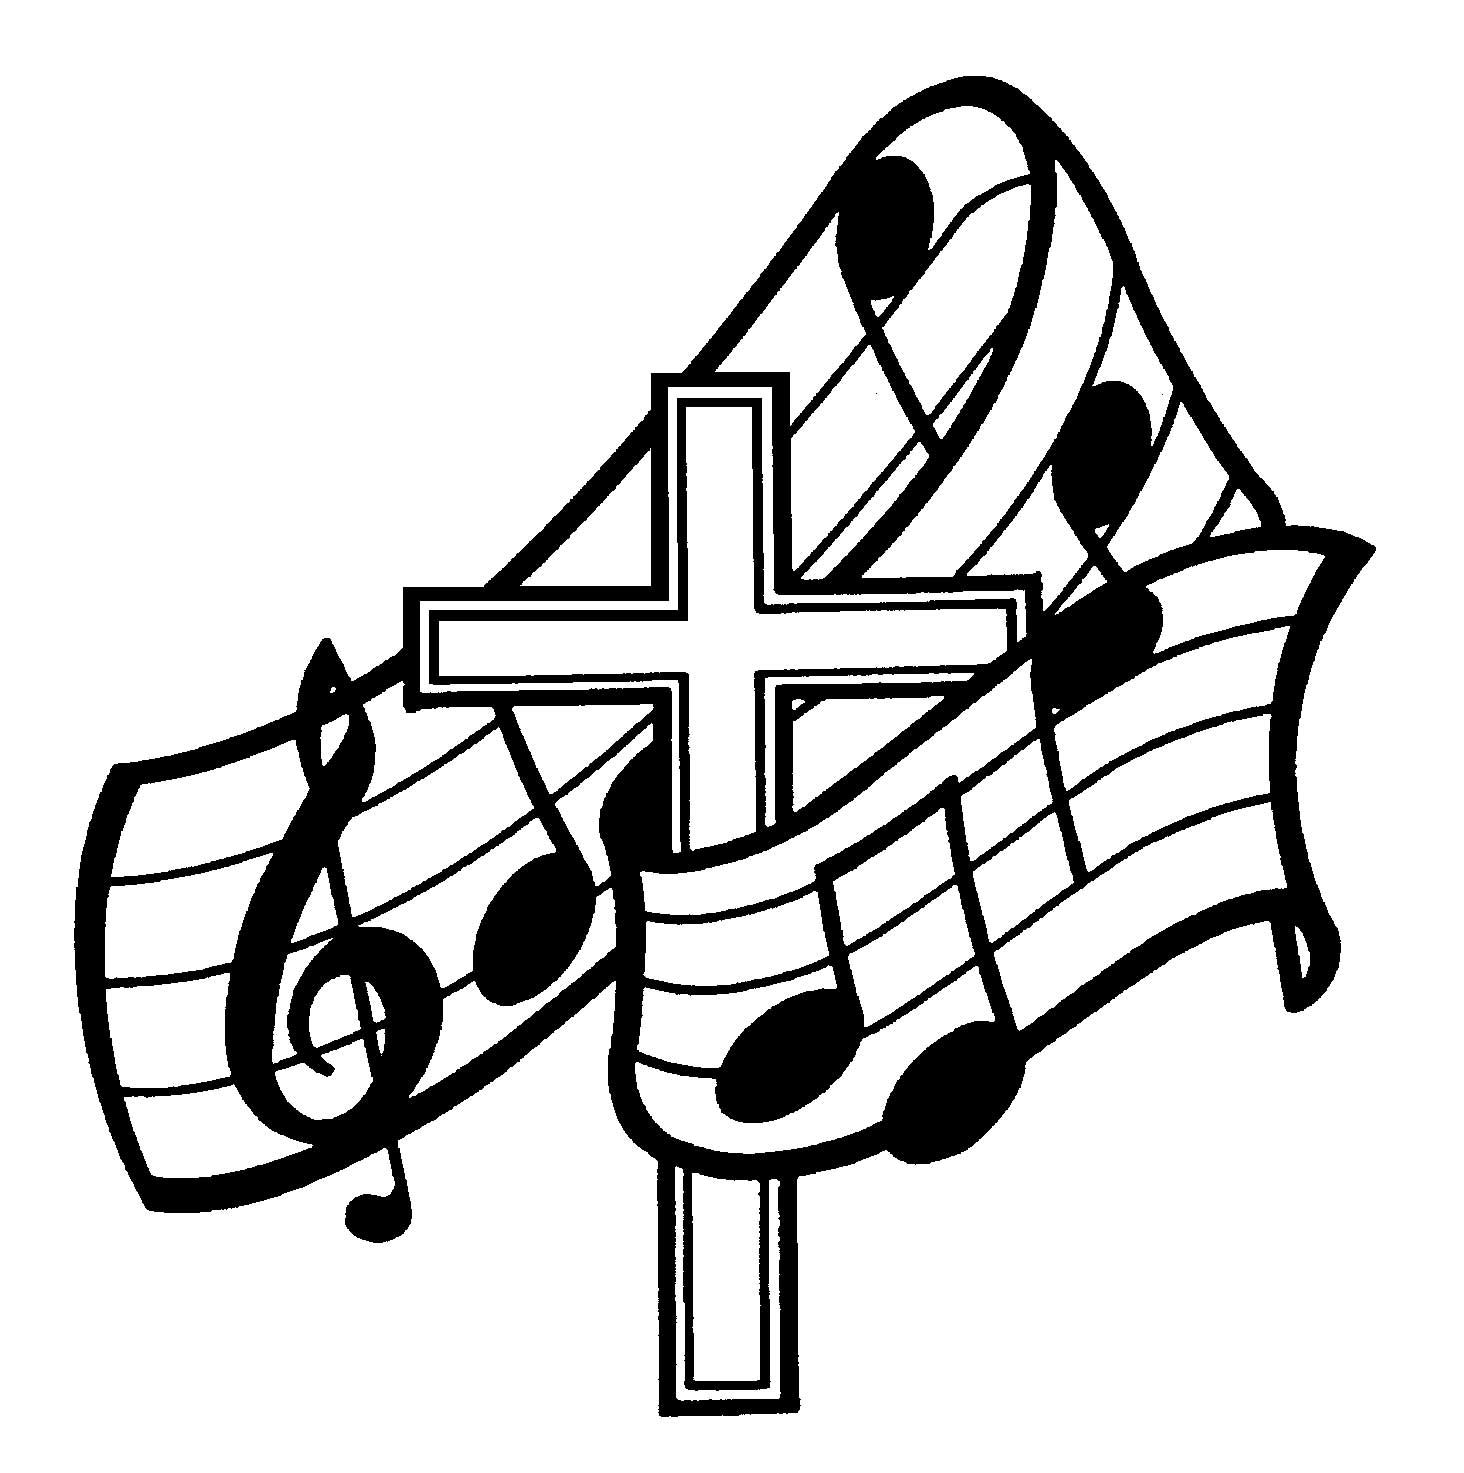 Music Ministry.